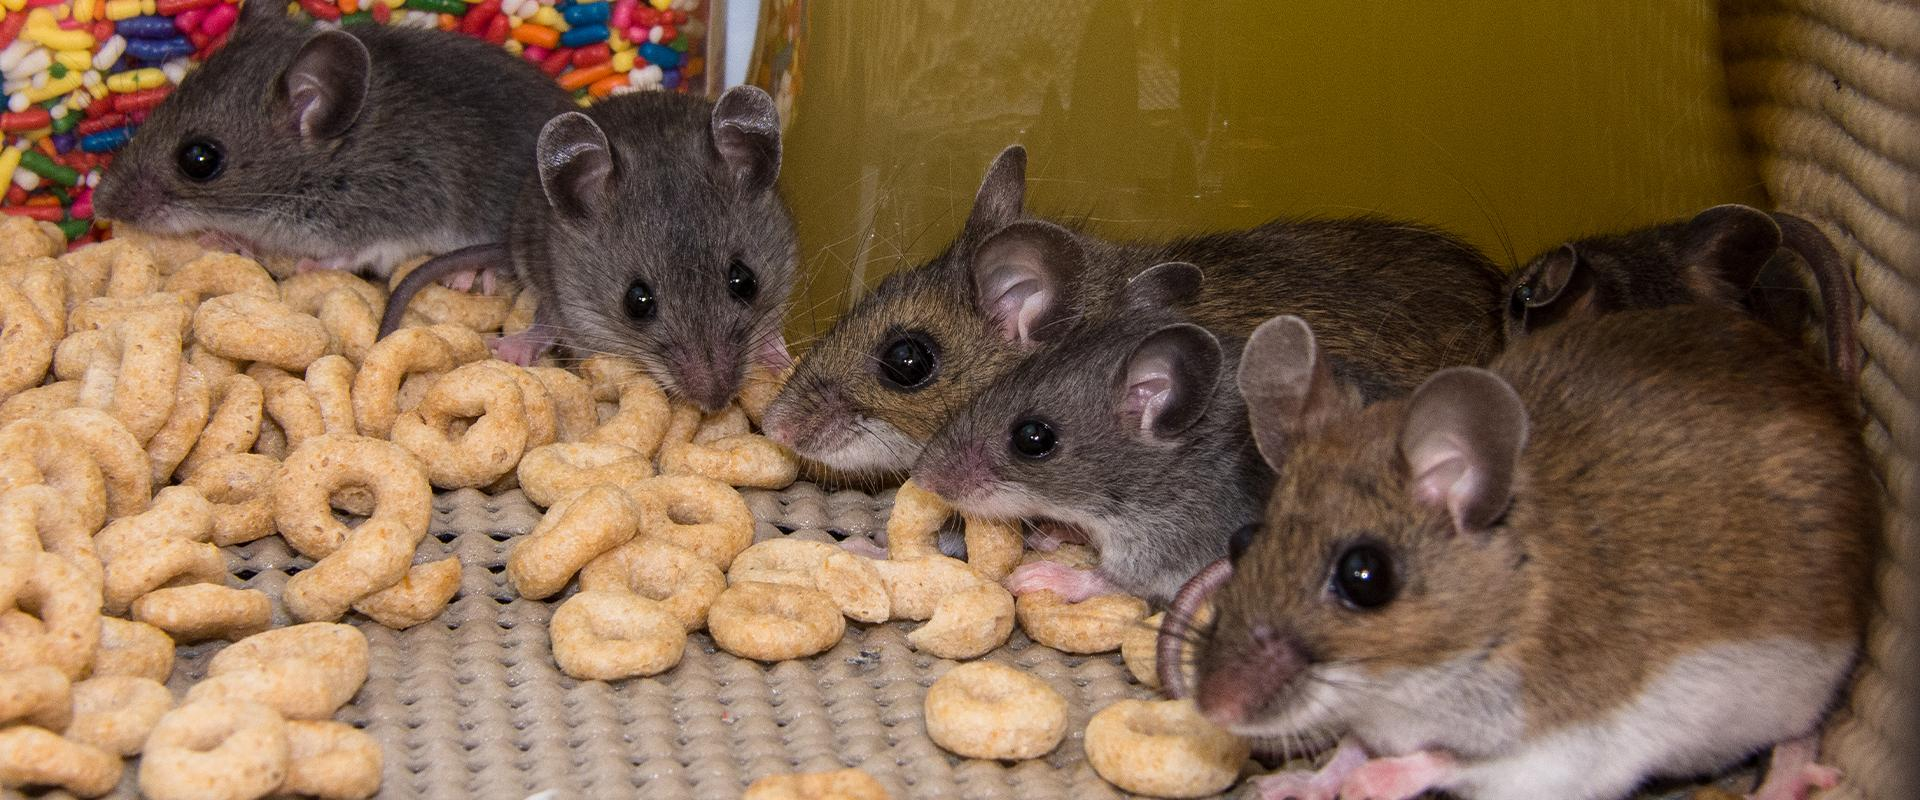 rodents eating cheerios in pantry